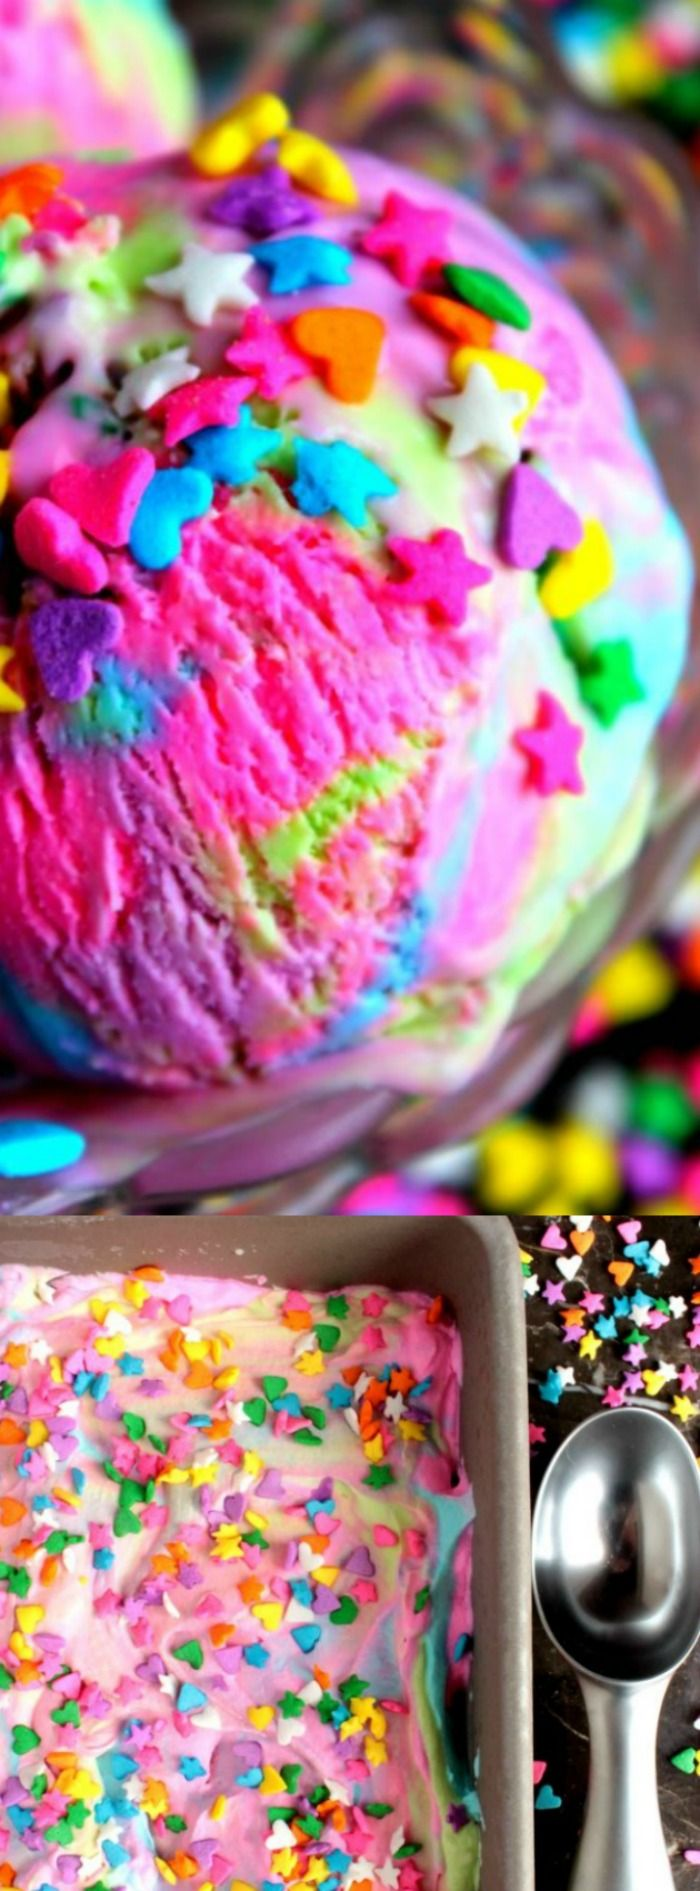 Sometimes you just need something a little wild and crazy like this yummy Unicorn Ice Cream from Big Bear's Wife to make you smile!